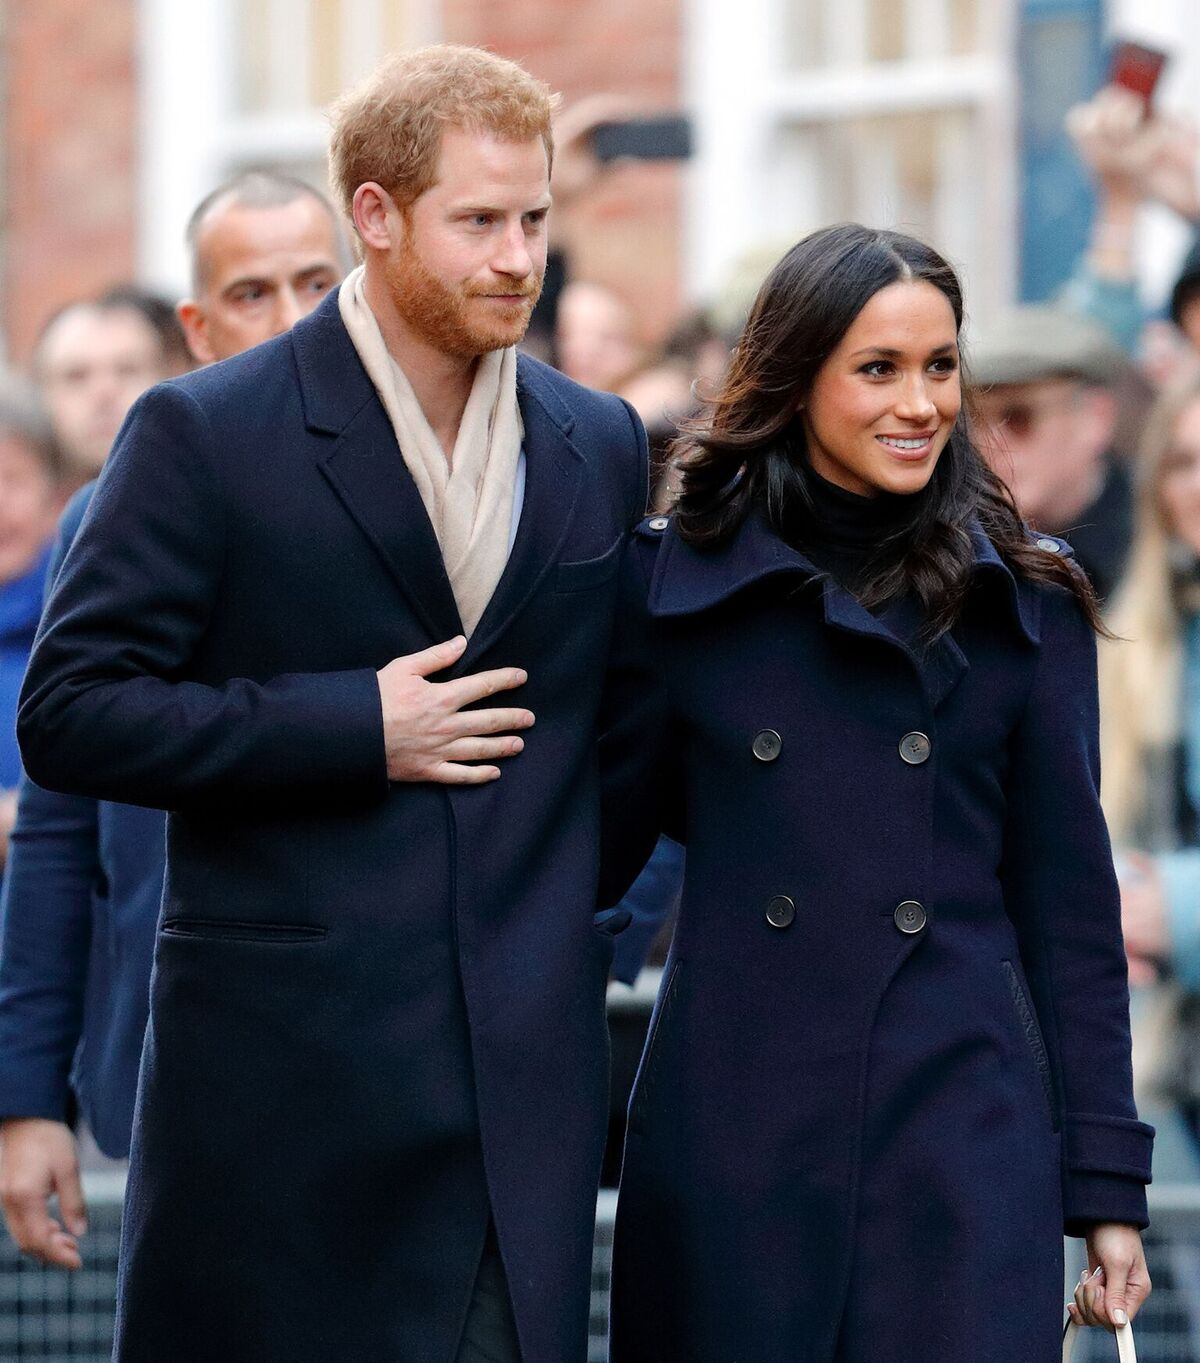 Prince Harry and Meghan Markle attend a Terrence Higgins Trust World AIDS Day charity fair at Nottingham Contemporary on December 1, 2017 in Nottingham, England. Prince Harry and Meghan Markle announced their engagement on Monday 27th November 2017 | Photo: Getty Images